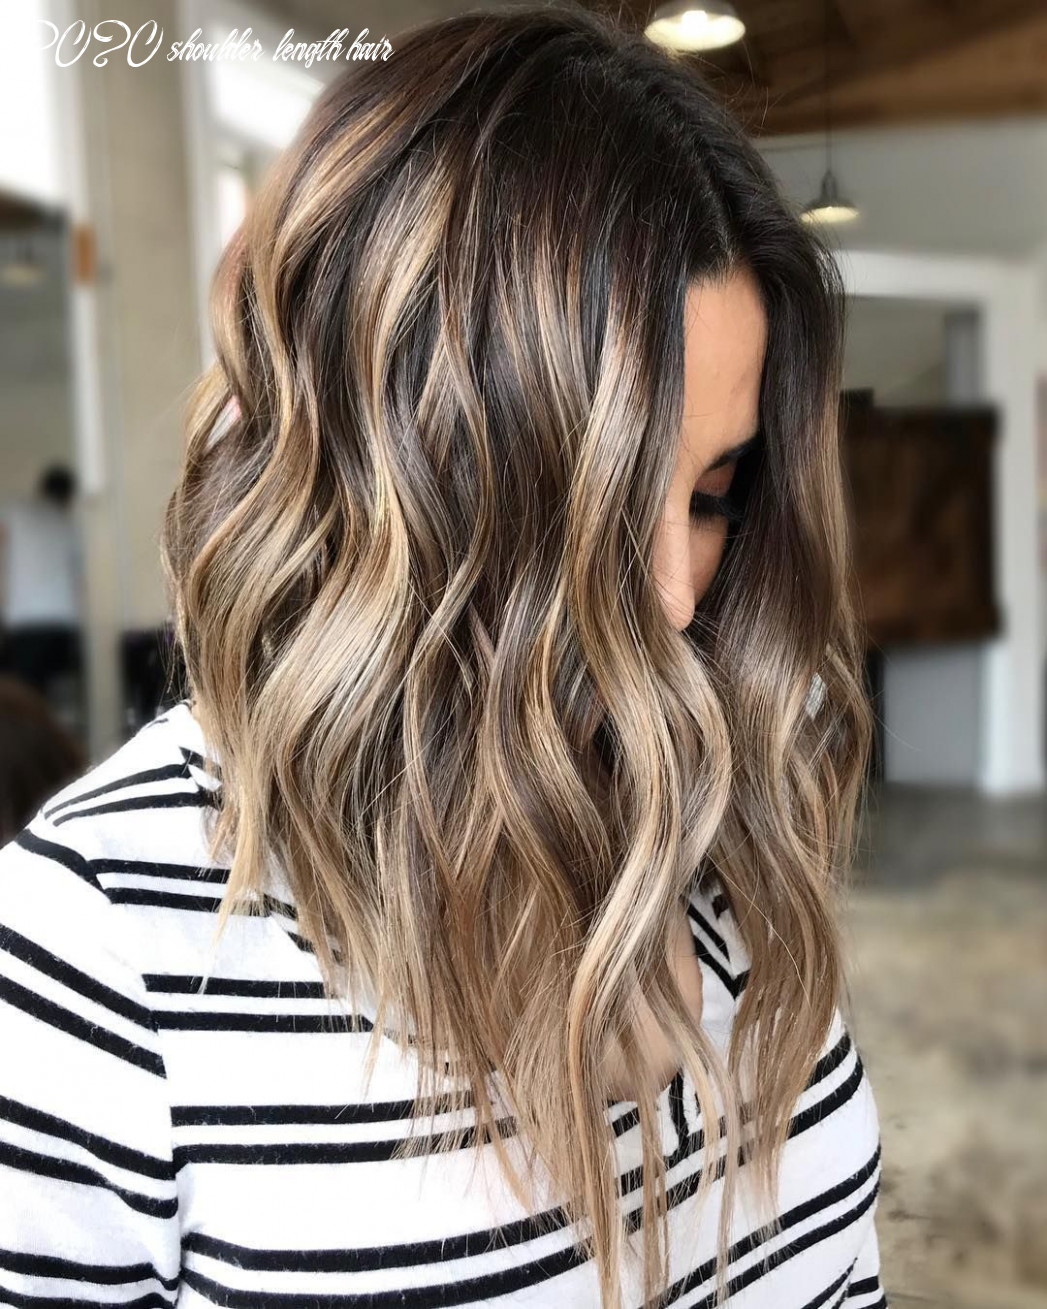 11 top shoulder length hairstyles wavy hair, women medium